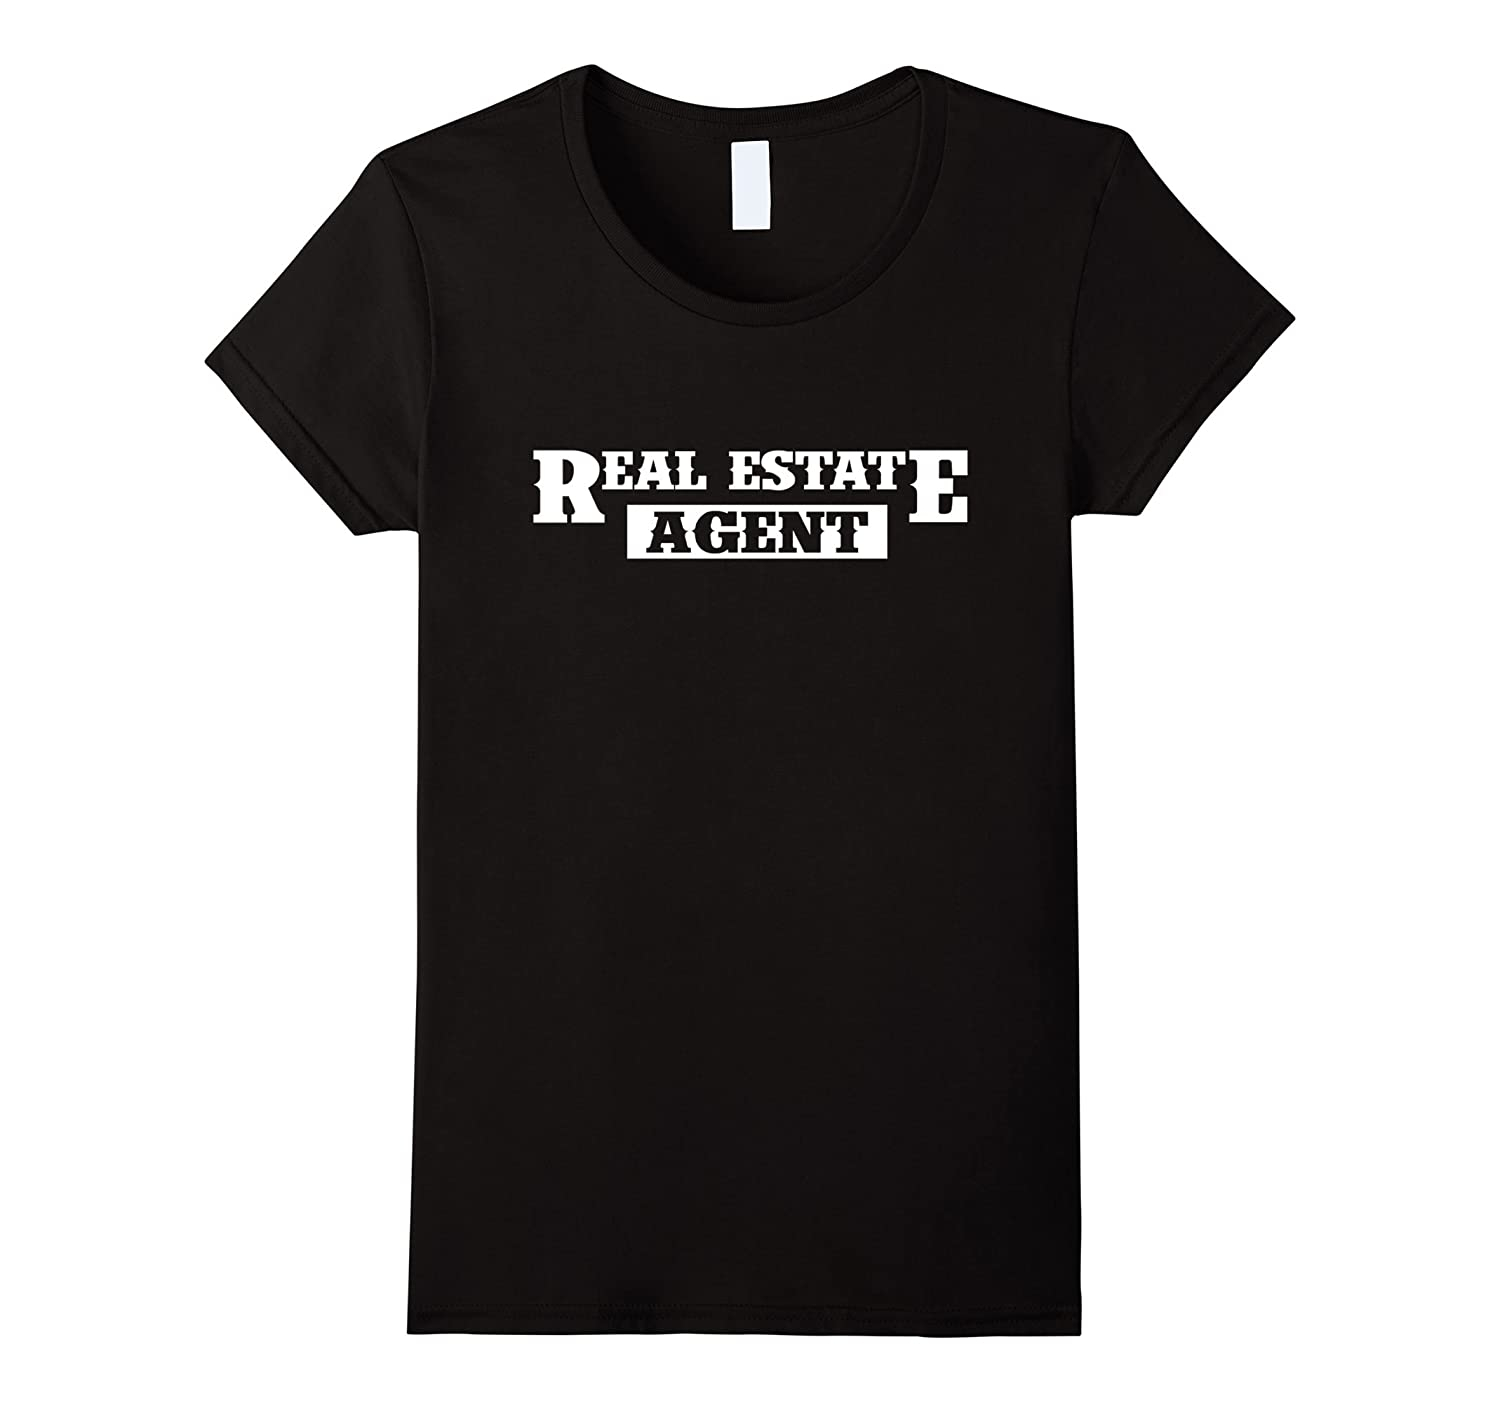 Ask Me About Buying or Selling a House Awesome Realtor Tee